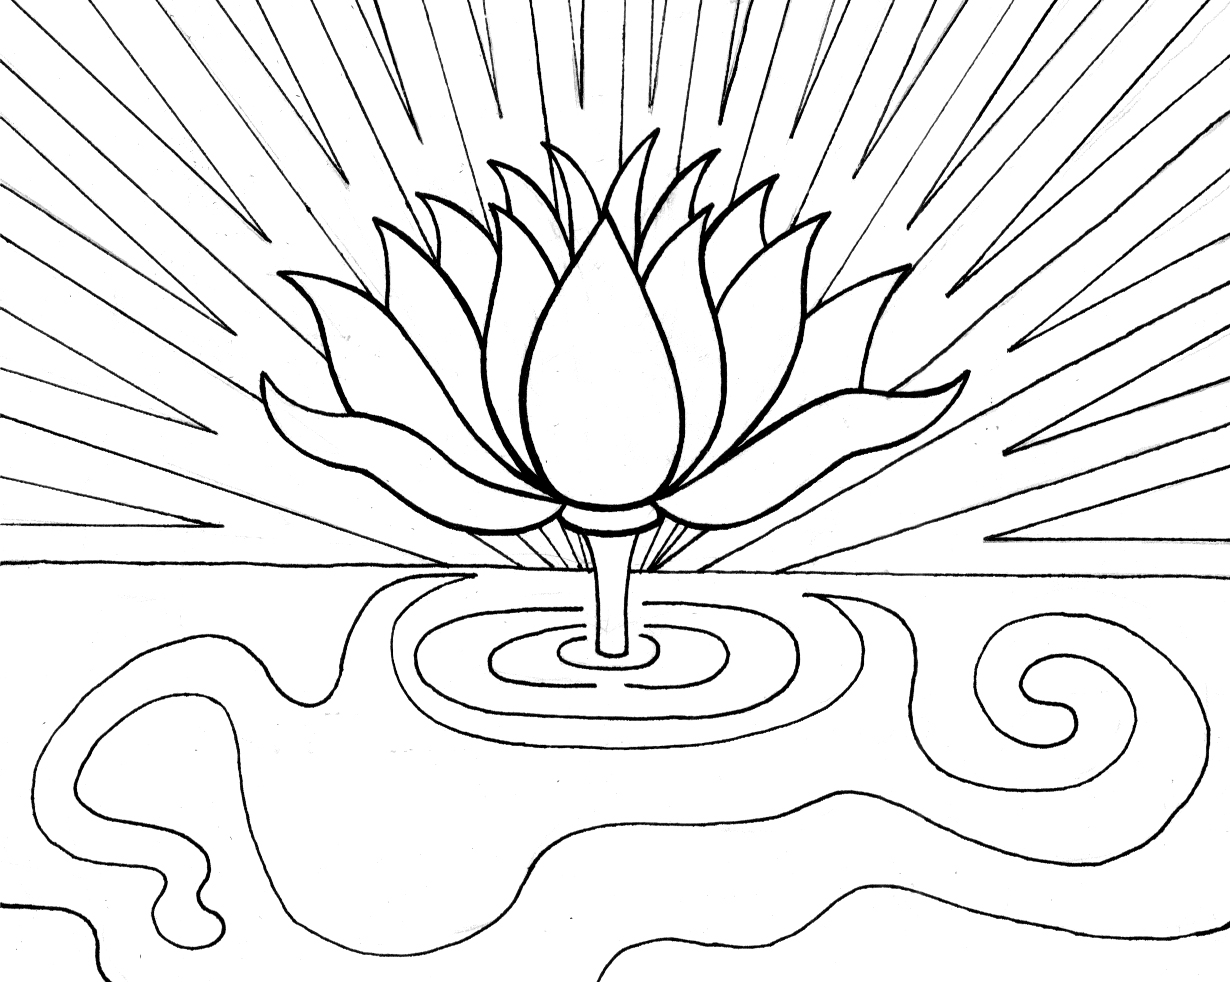 Lotus coloring #1, Download drawings